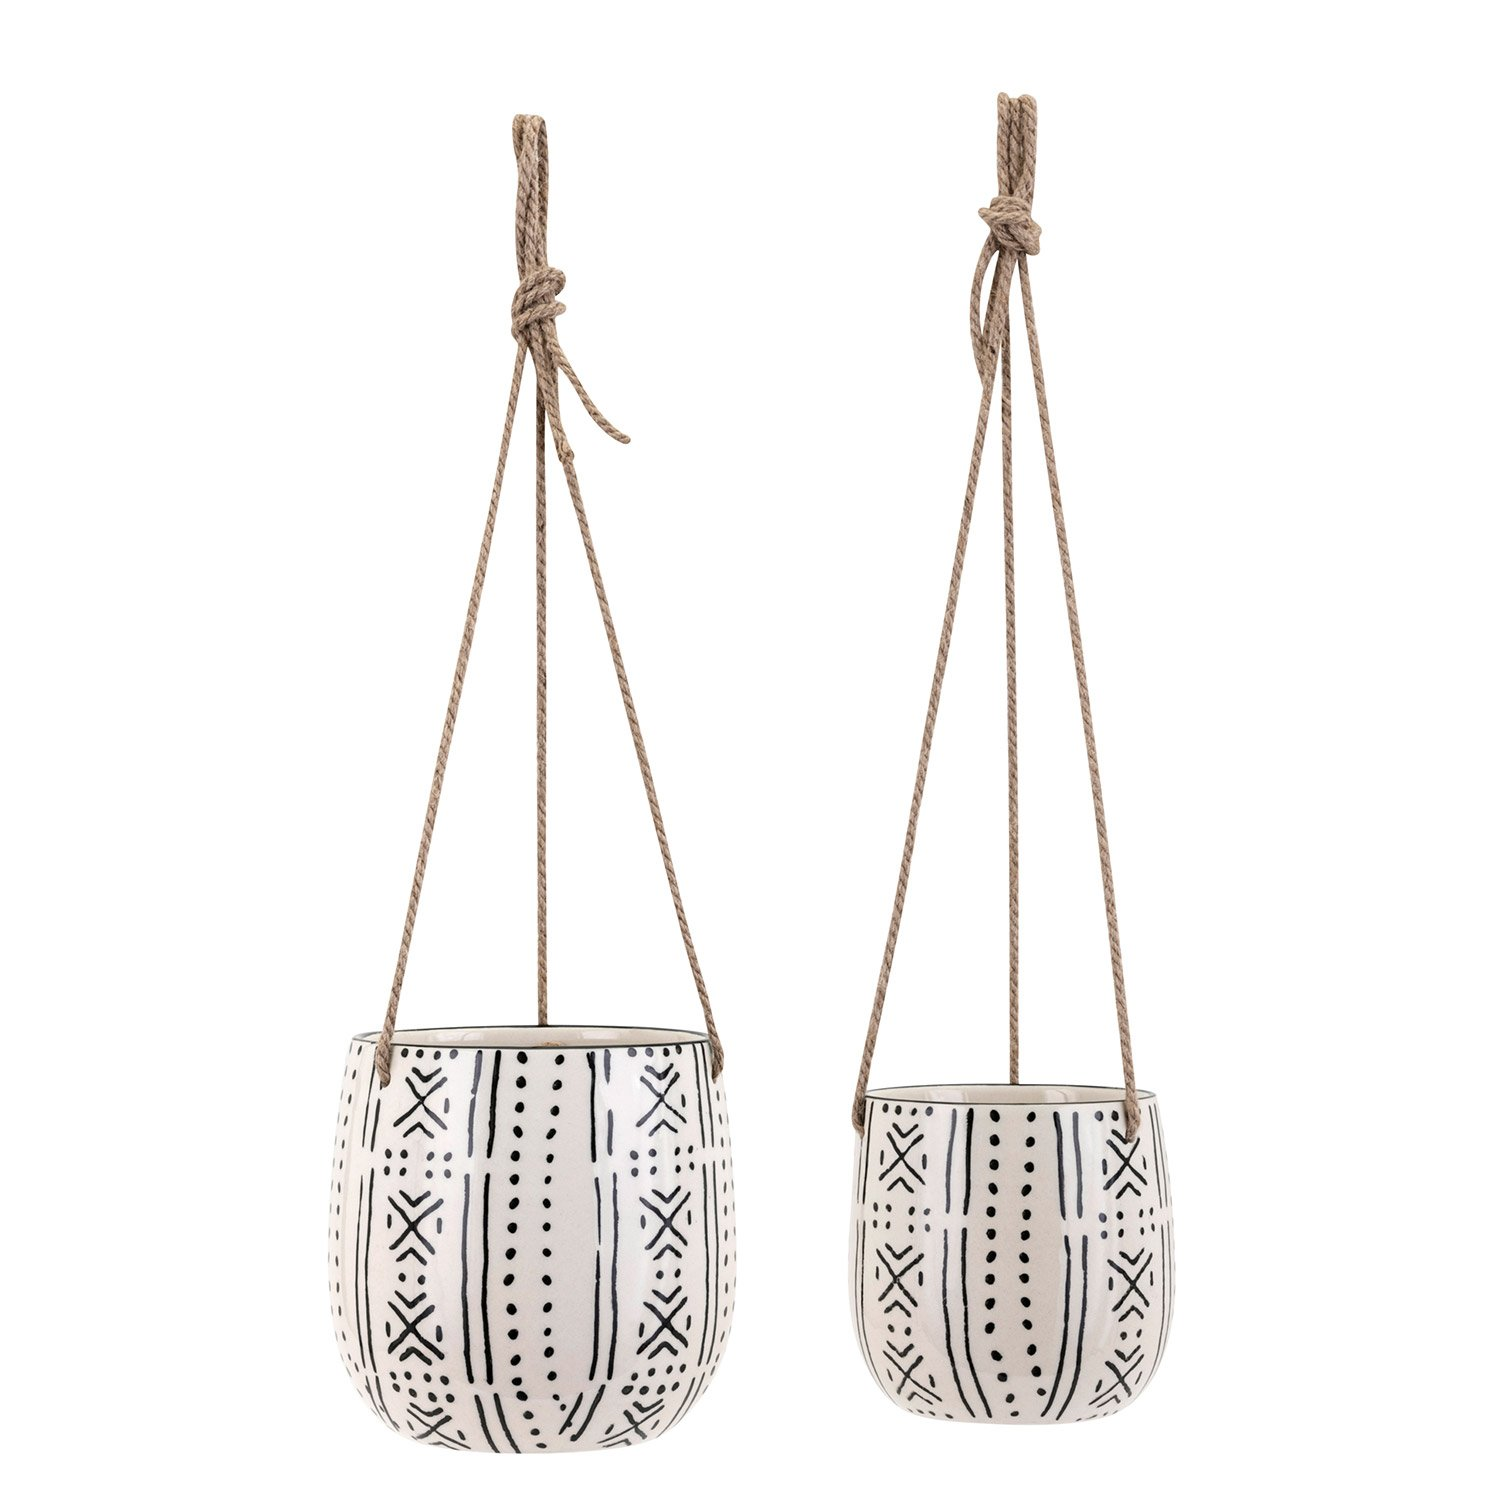 Paynes Gray Lazlo Hanging Planter Set of 2